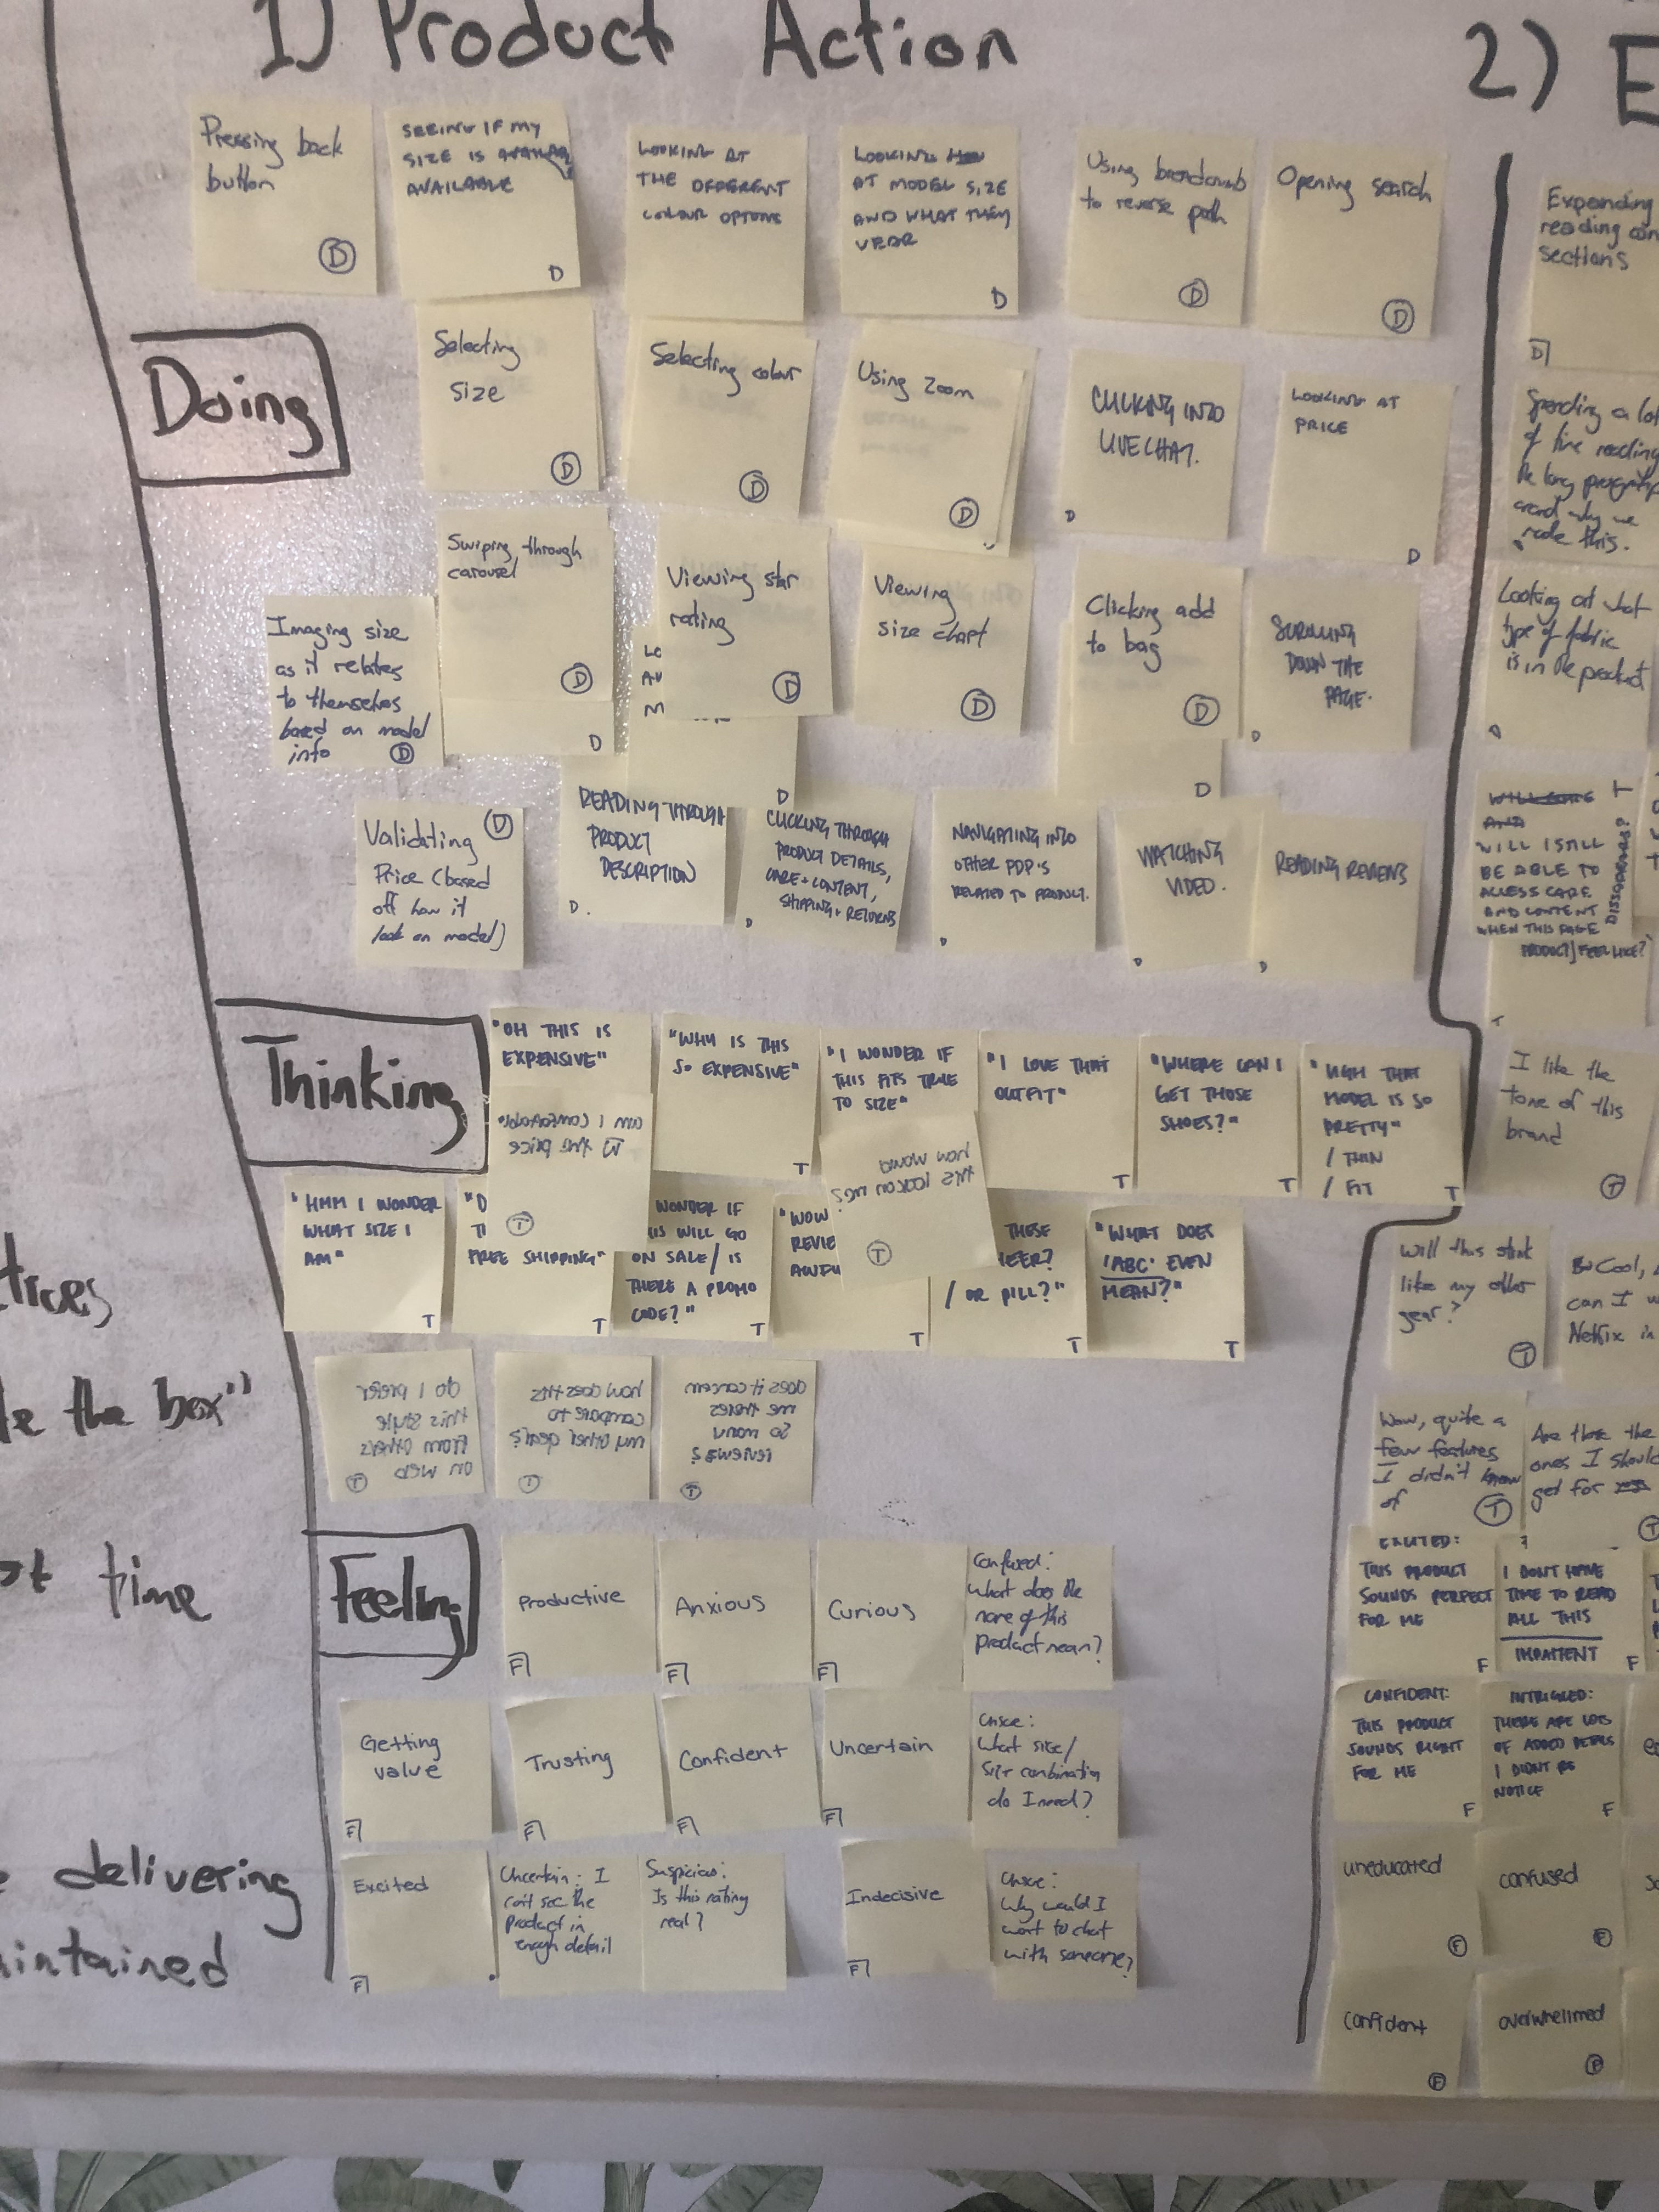 Photo of sticky notes form design sprint